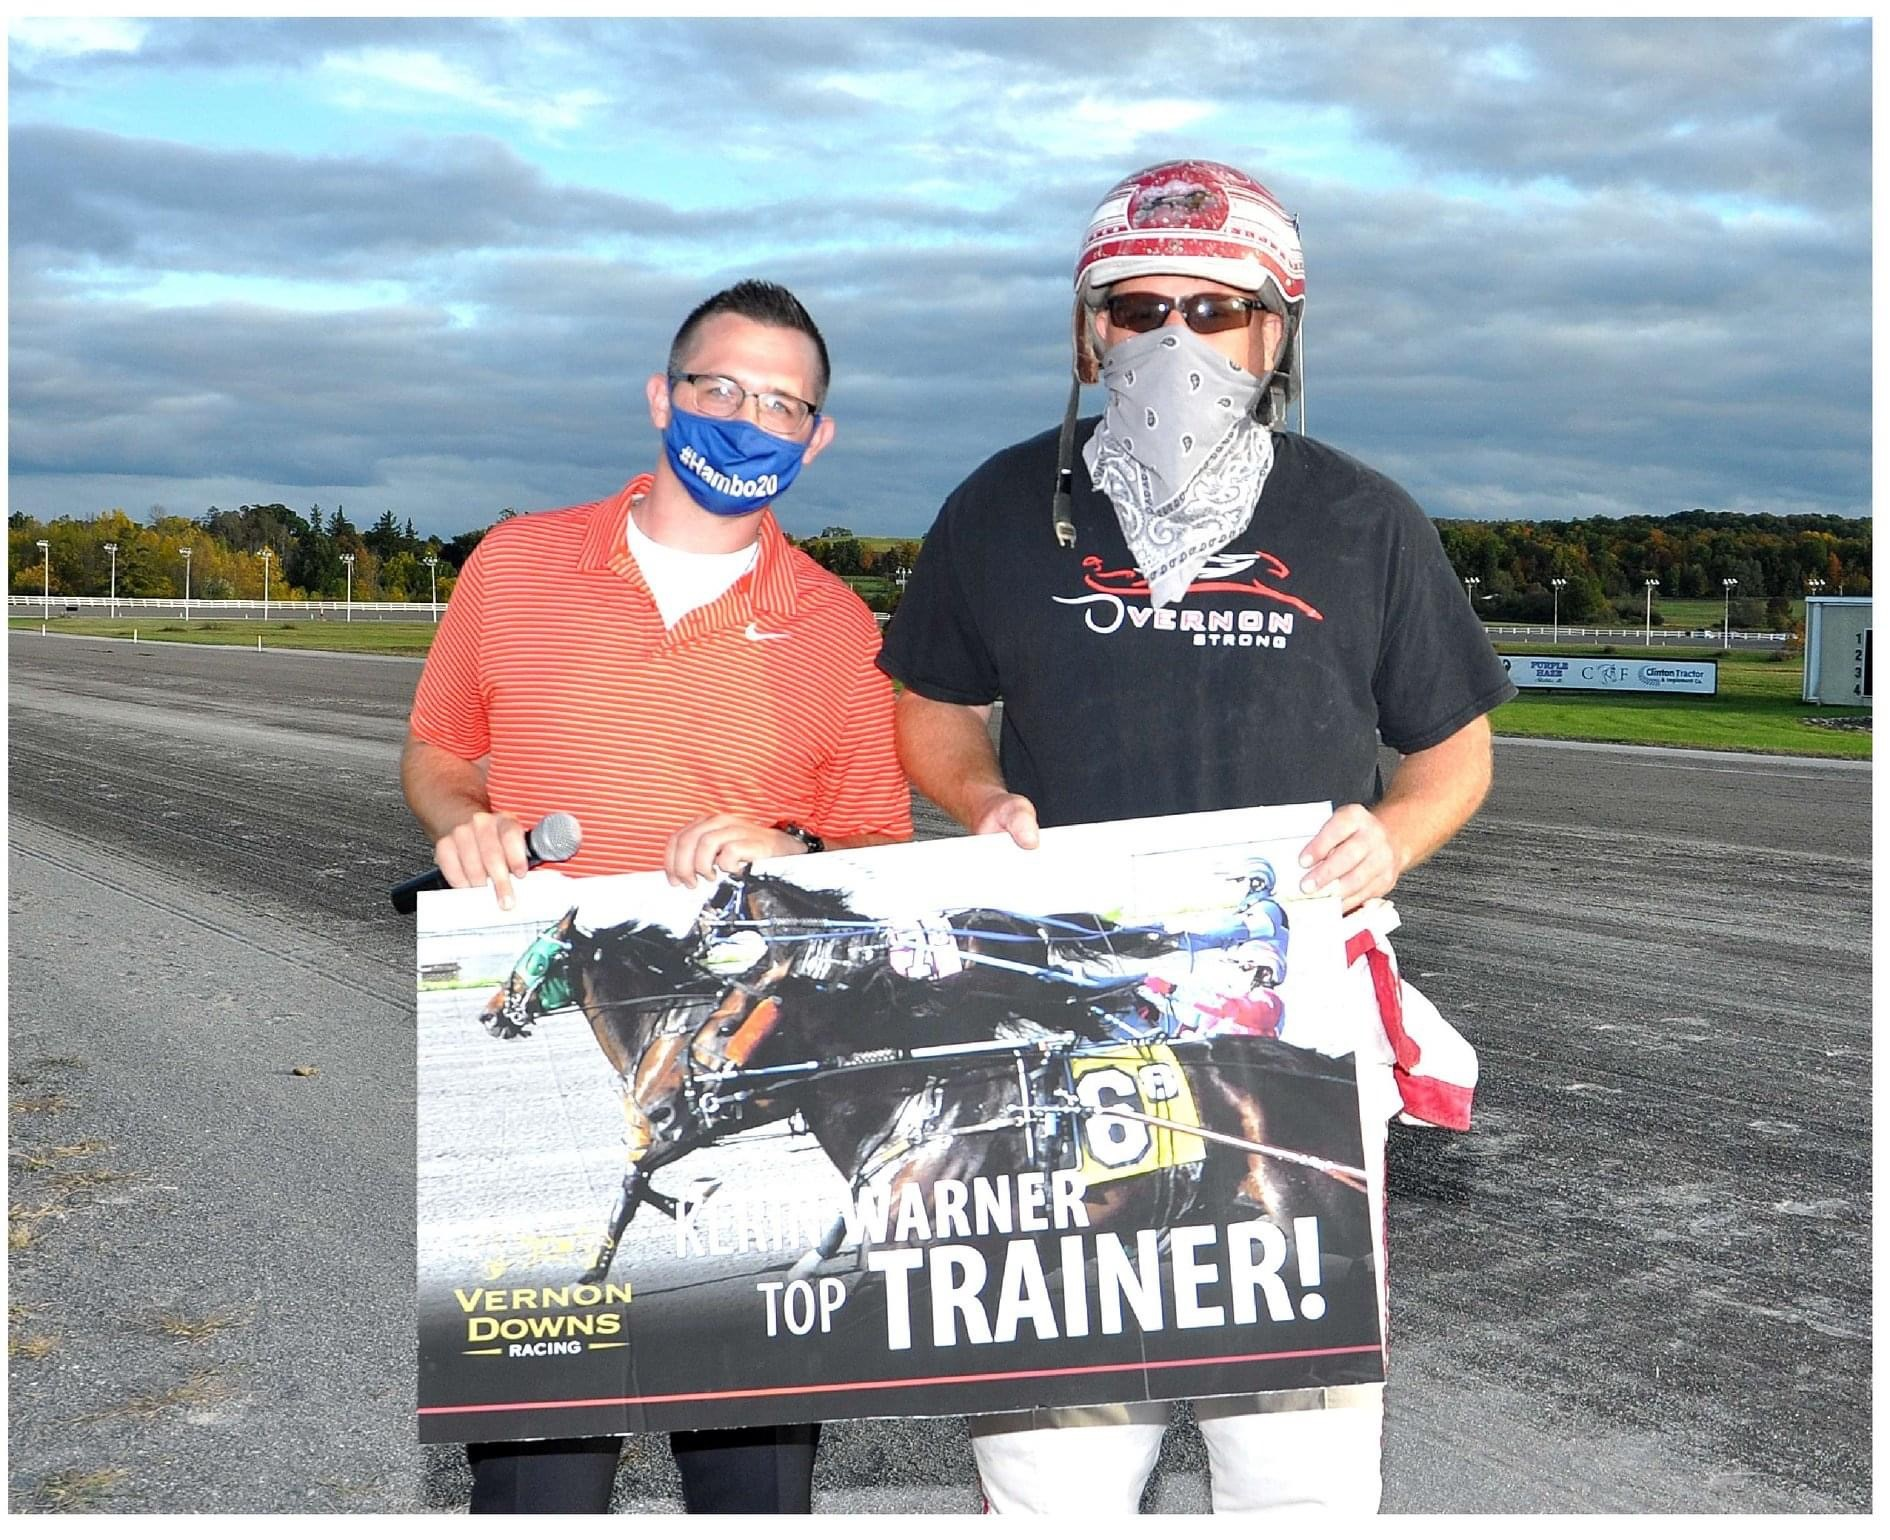 Kerin Warner poses after taking top trainer at Vernon Downs racetrack